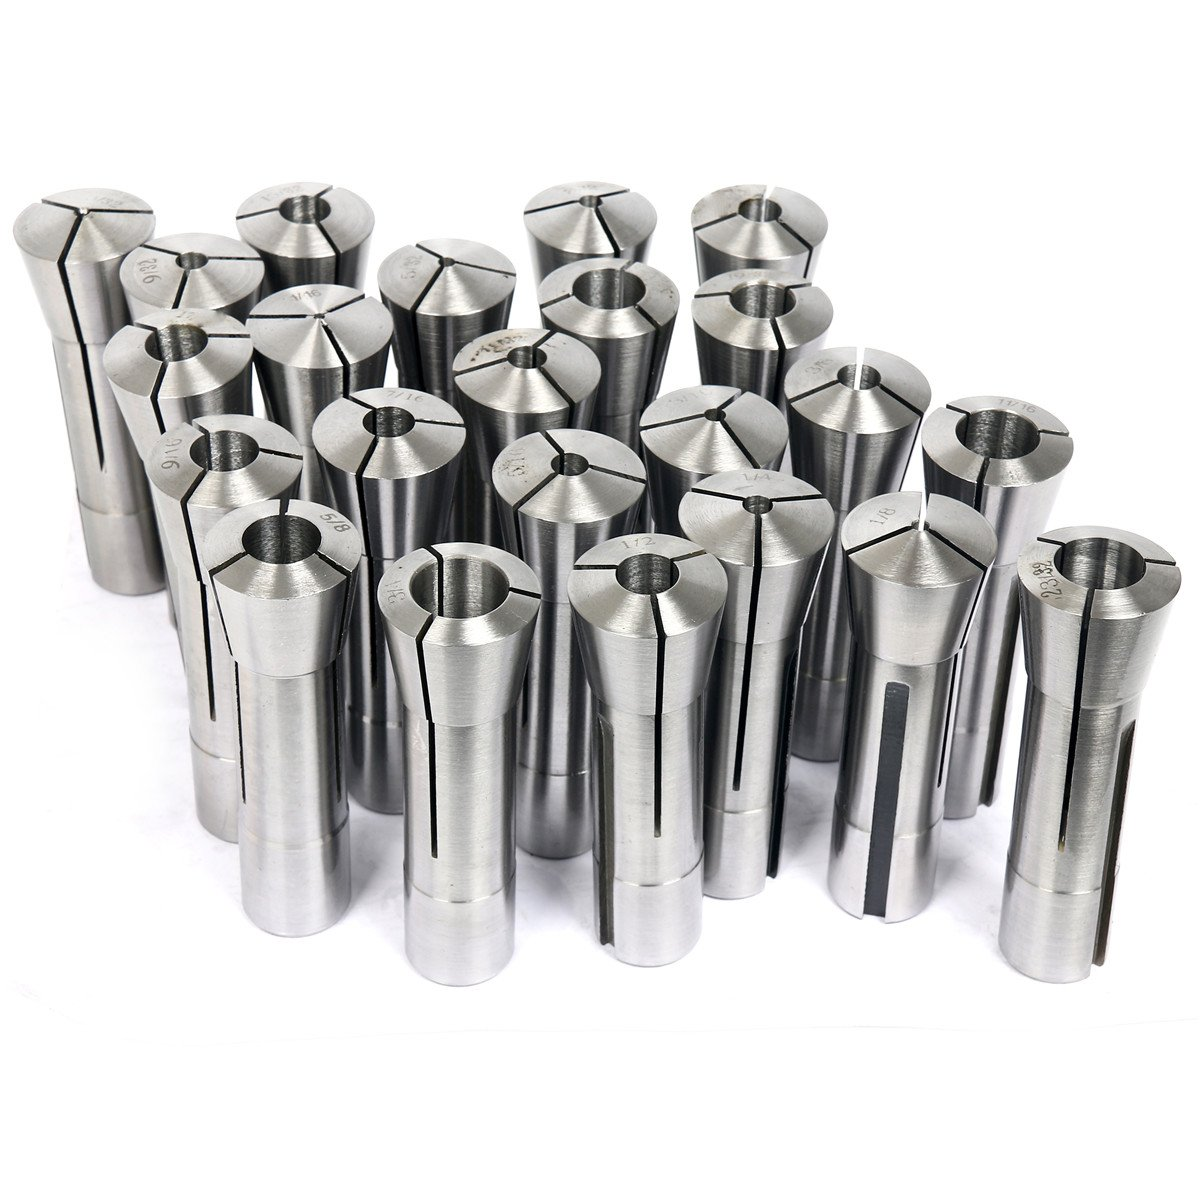 Set Of 23 Pcs High Grade And Precision Ground R8 Collet Size 1//16 to 3//4 inch